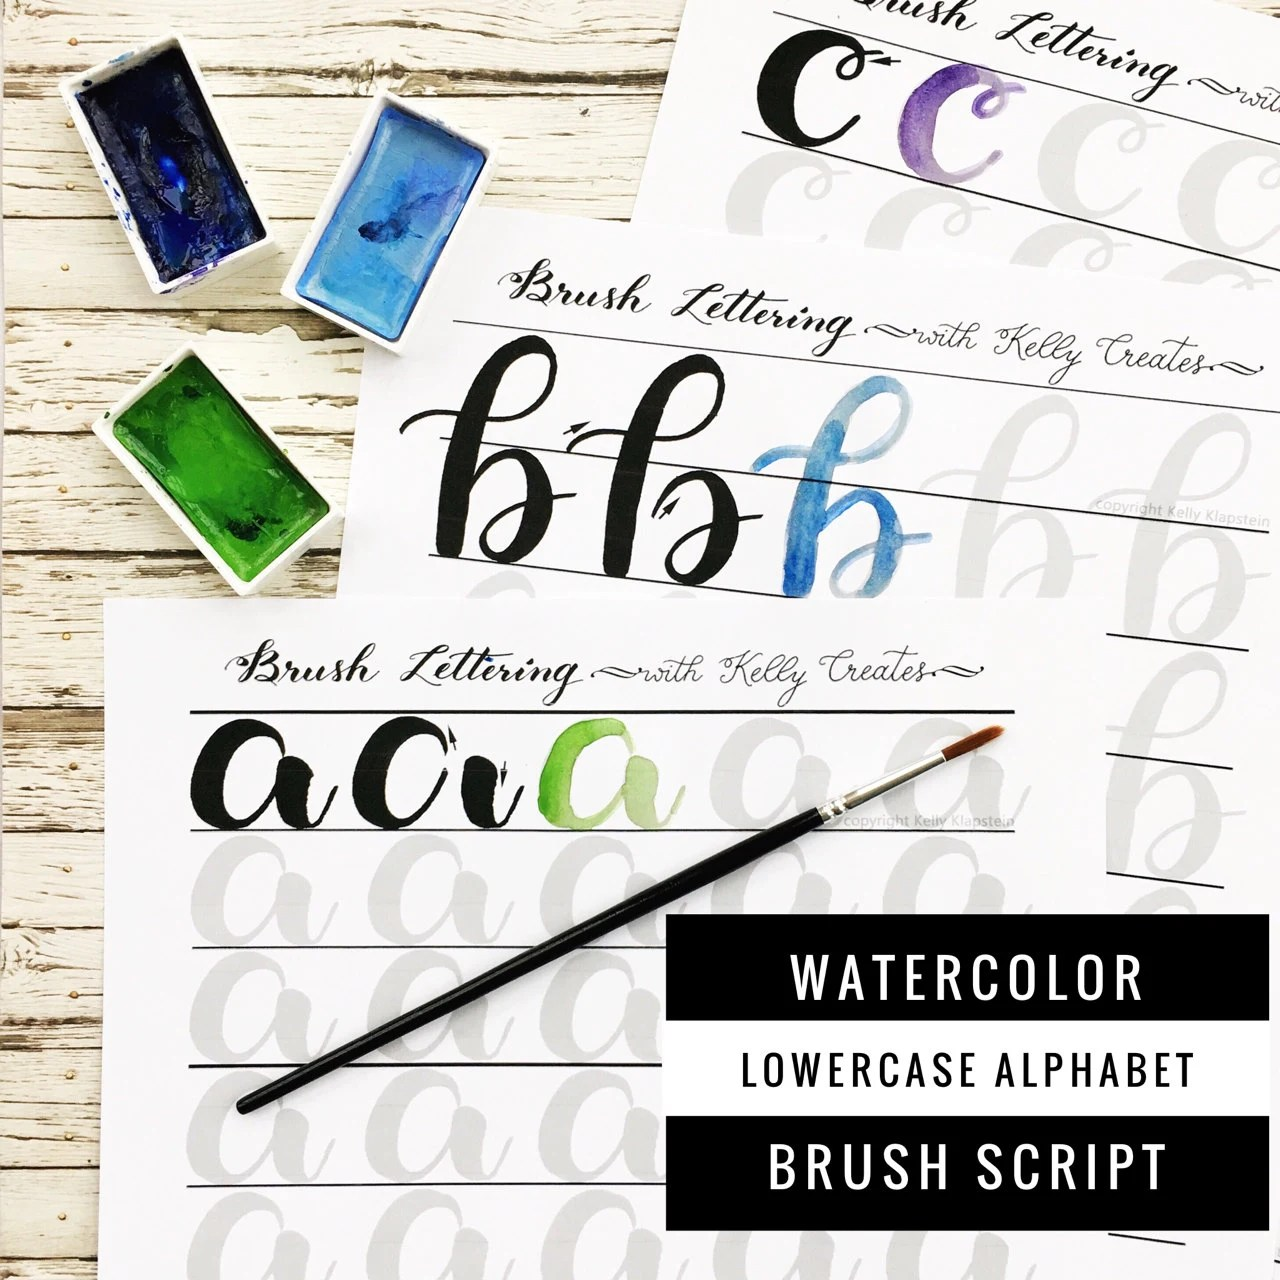 Watercolor Brush Lettering Alphabet Amp Drills Worksheets